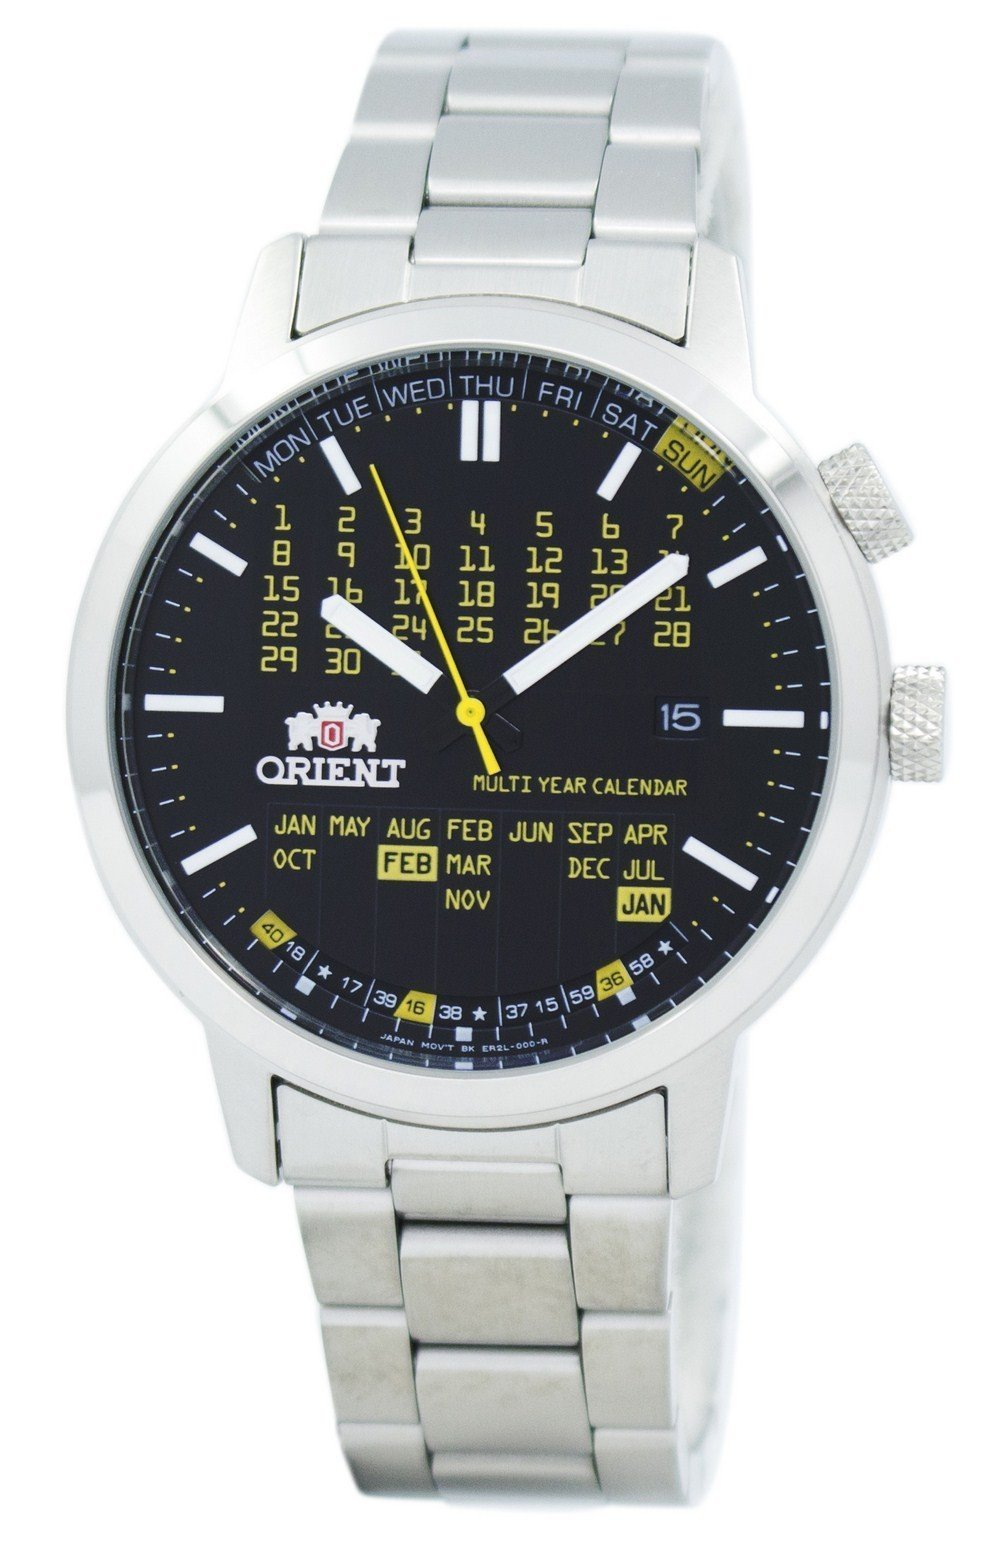 Orient Stylish And Smart Multi-Year Calendar FER2L002B0 ER2L002B Men's Watch